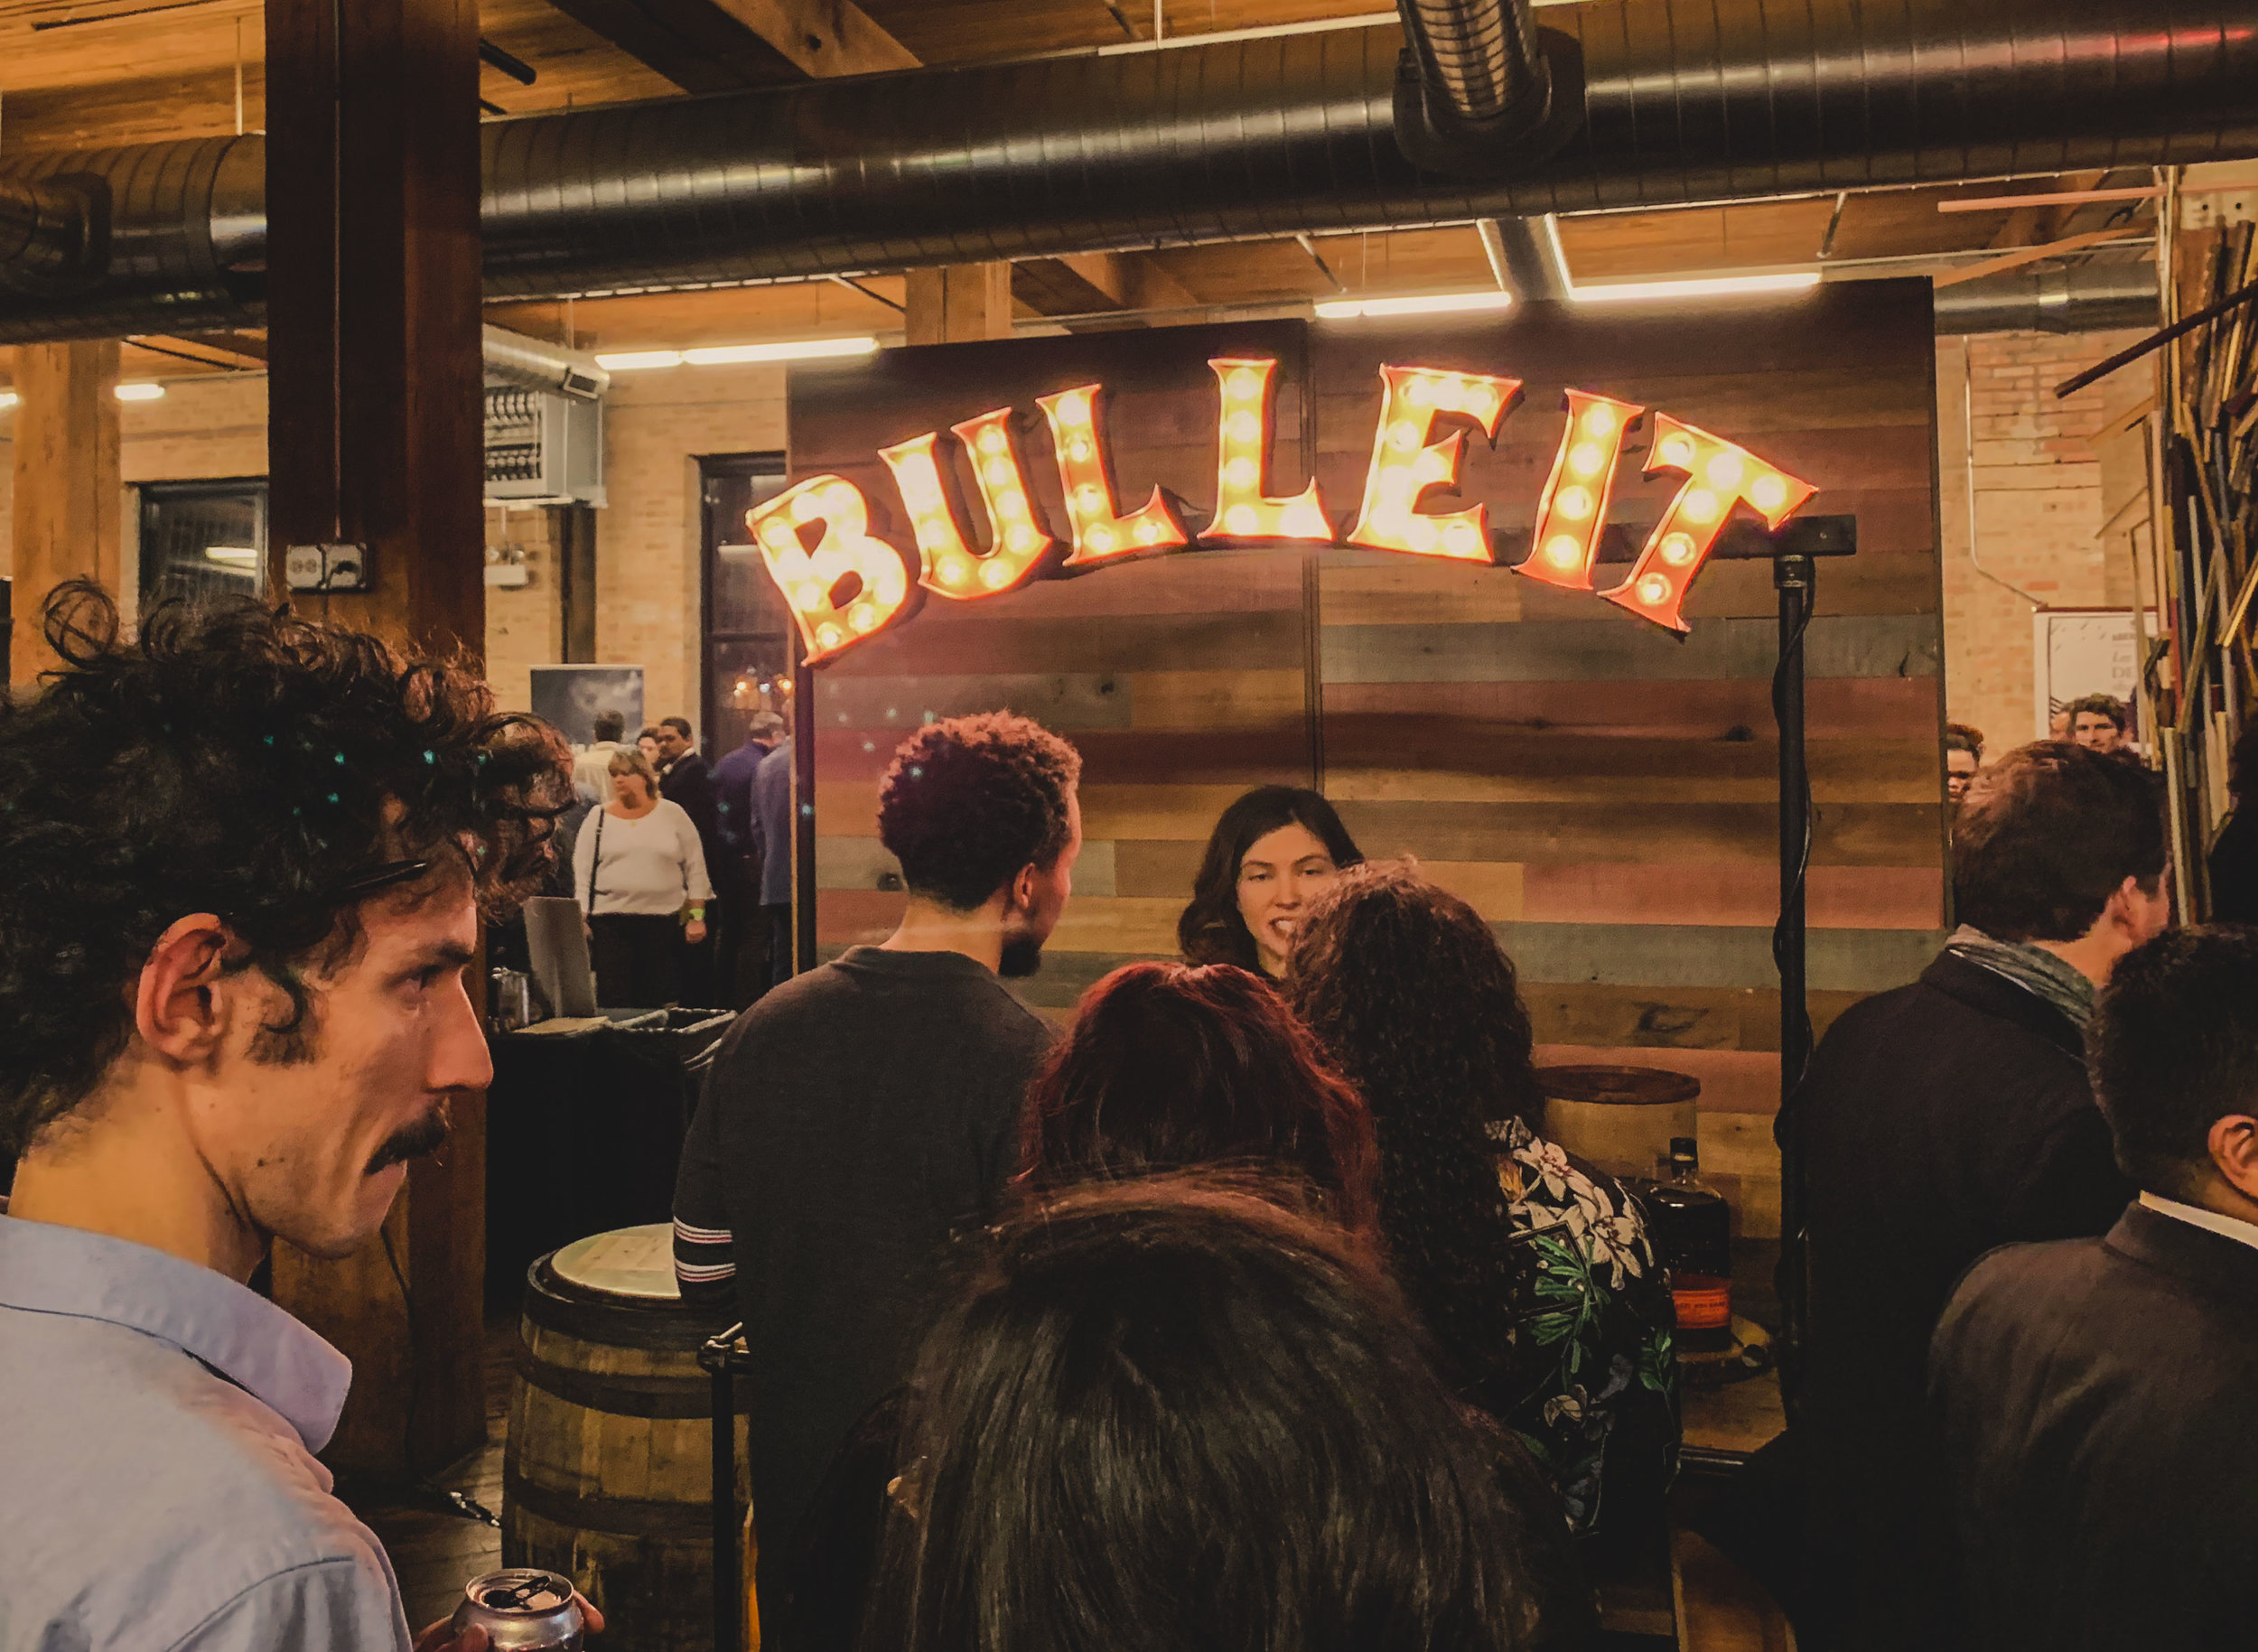 Bulleit Distilling Co.'s whiskey booth at Chicago Magazine's Barrel Night